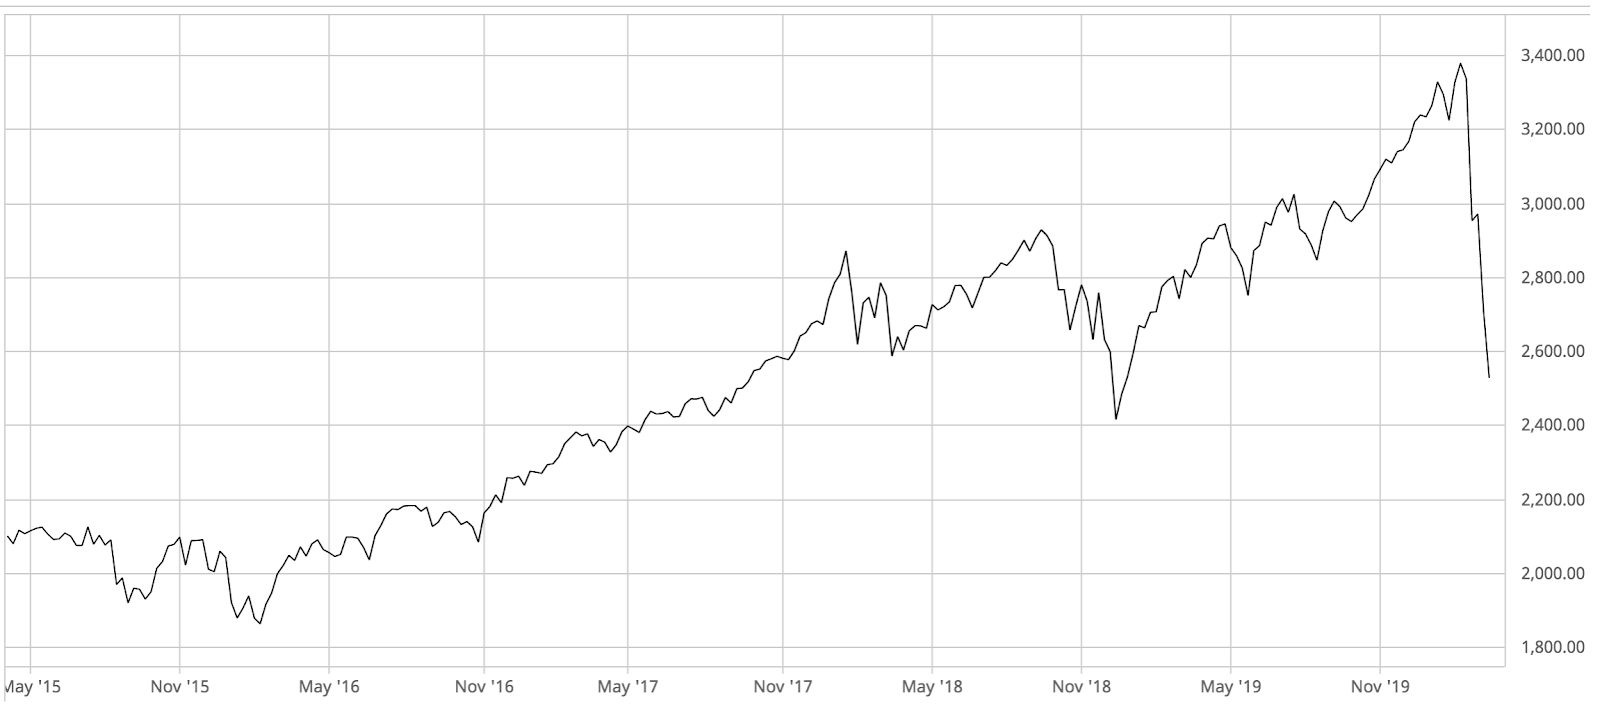 3 Year graph of the S&P 500 between March 2015 and March 2020